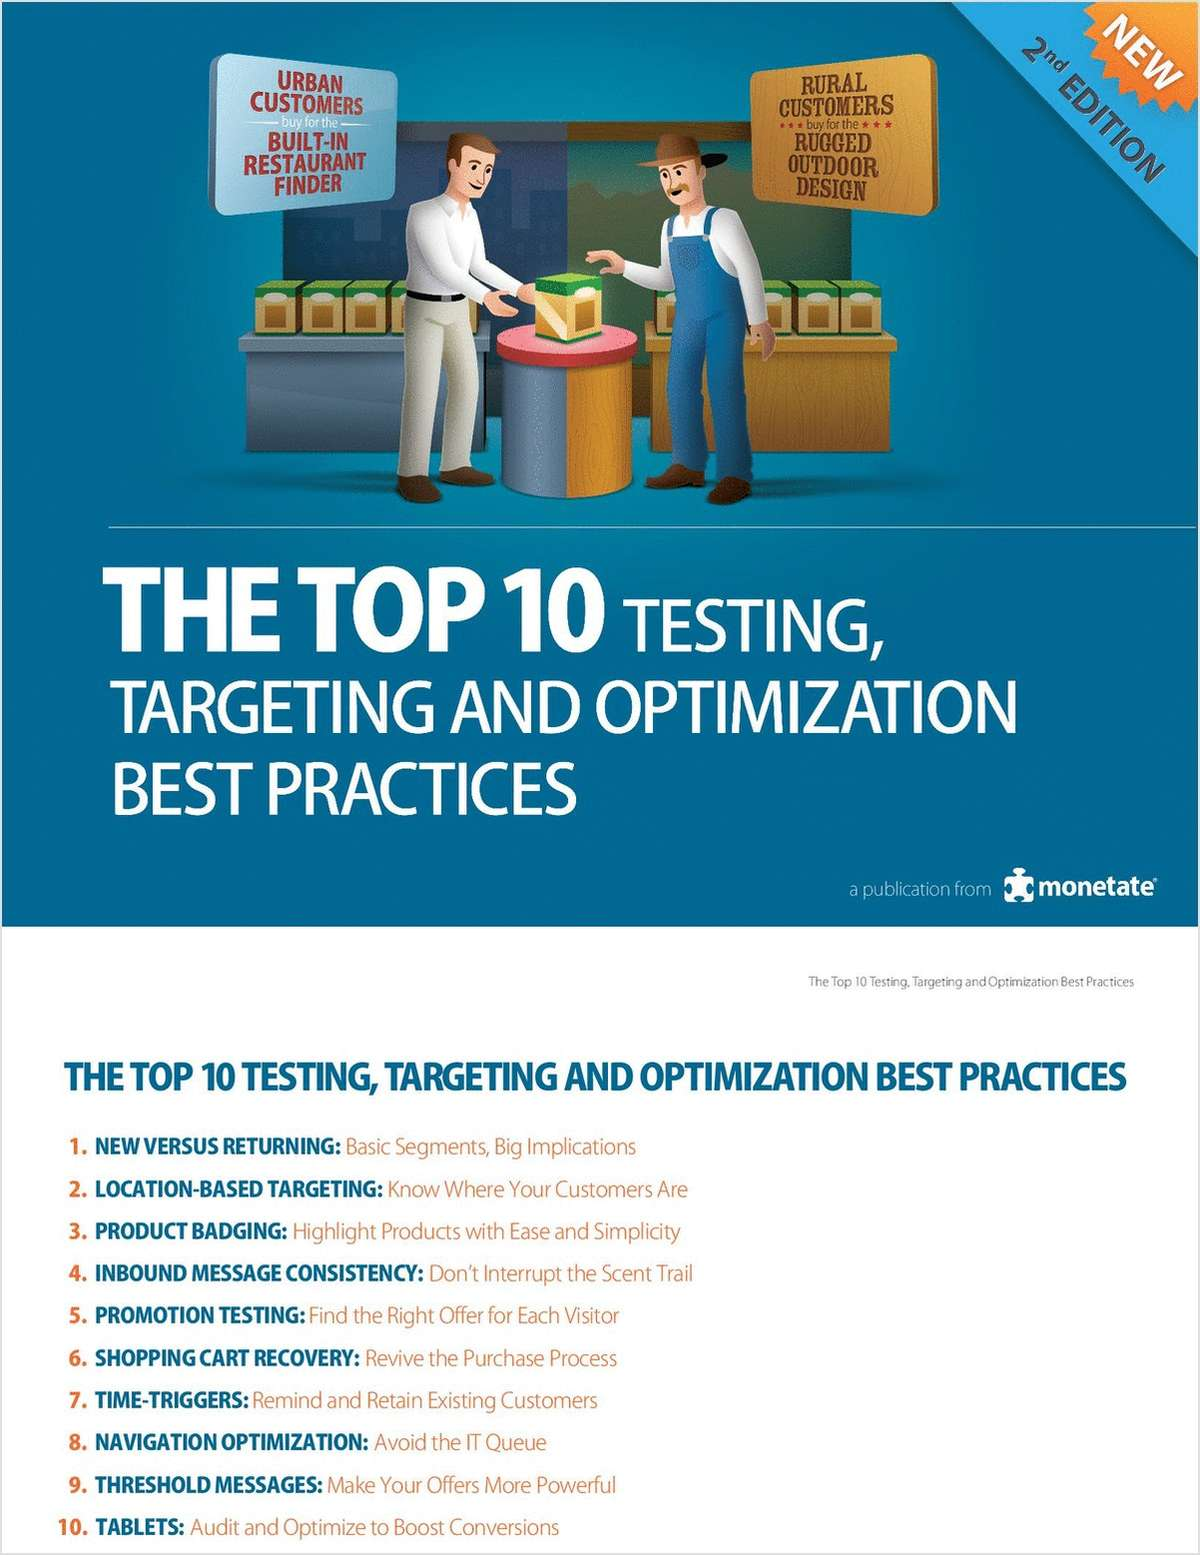 10 Best Practices For Website Testing, Targeting and Optimization